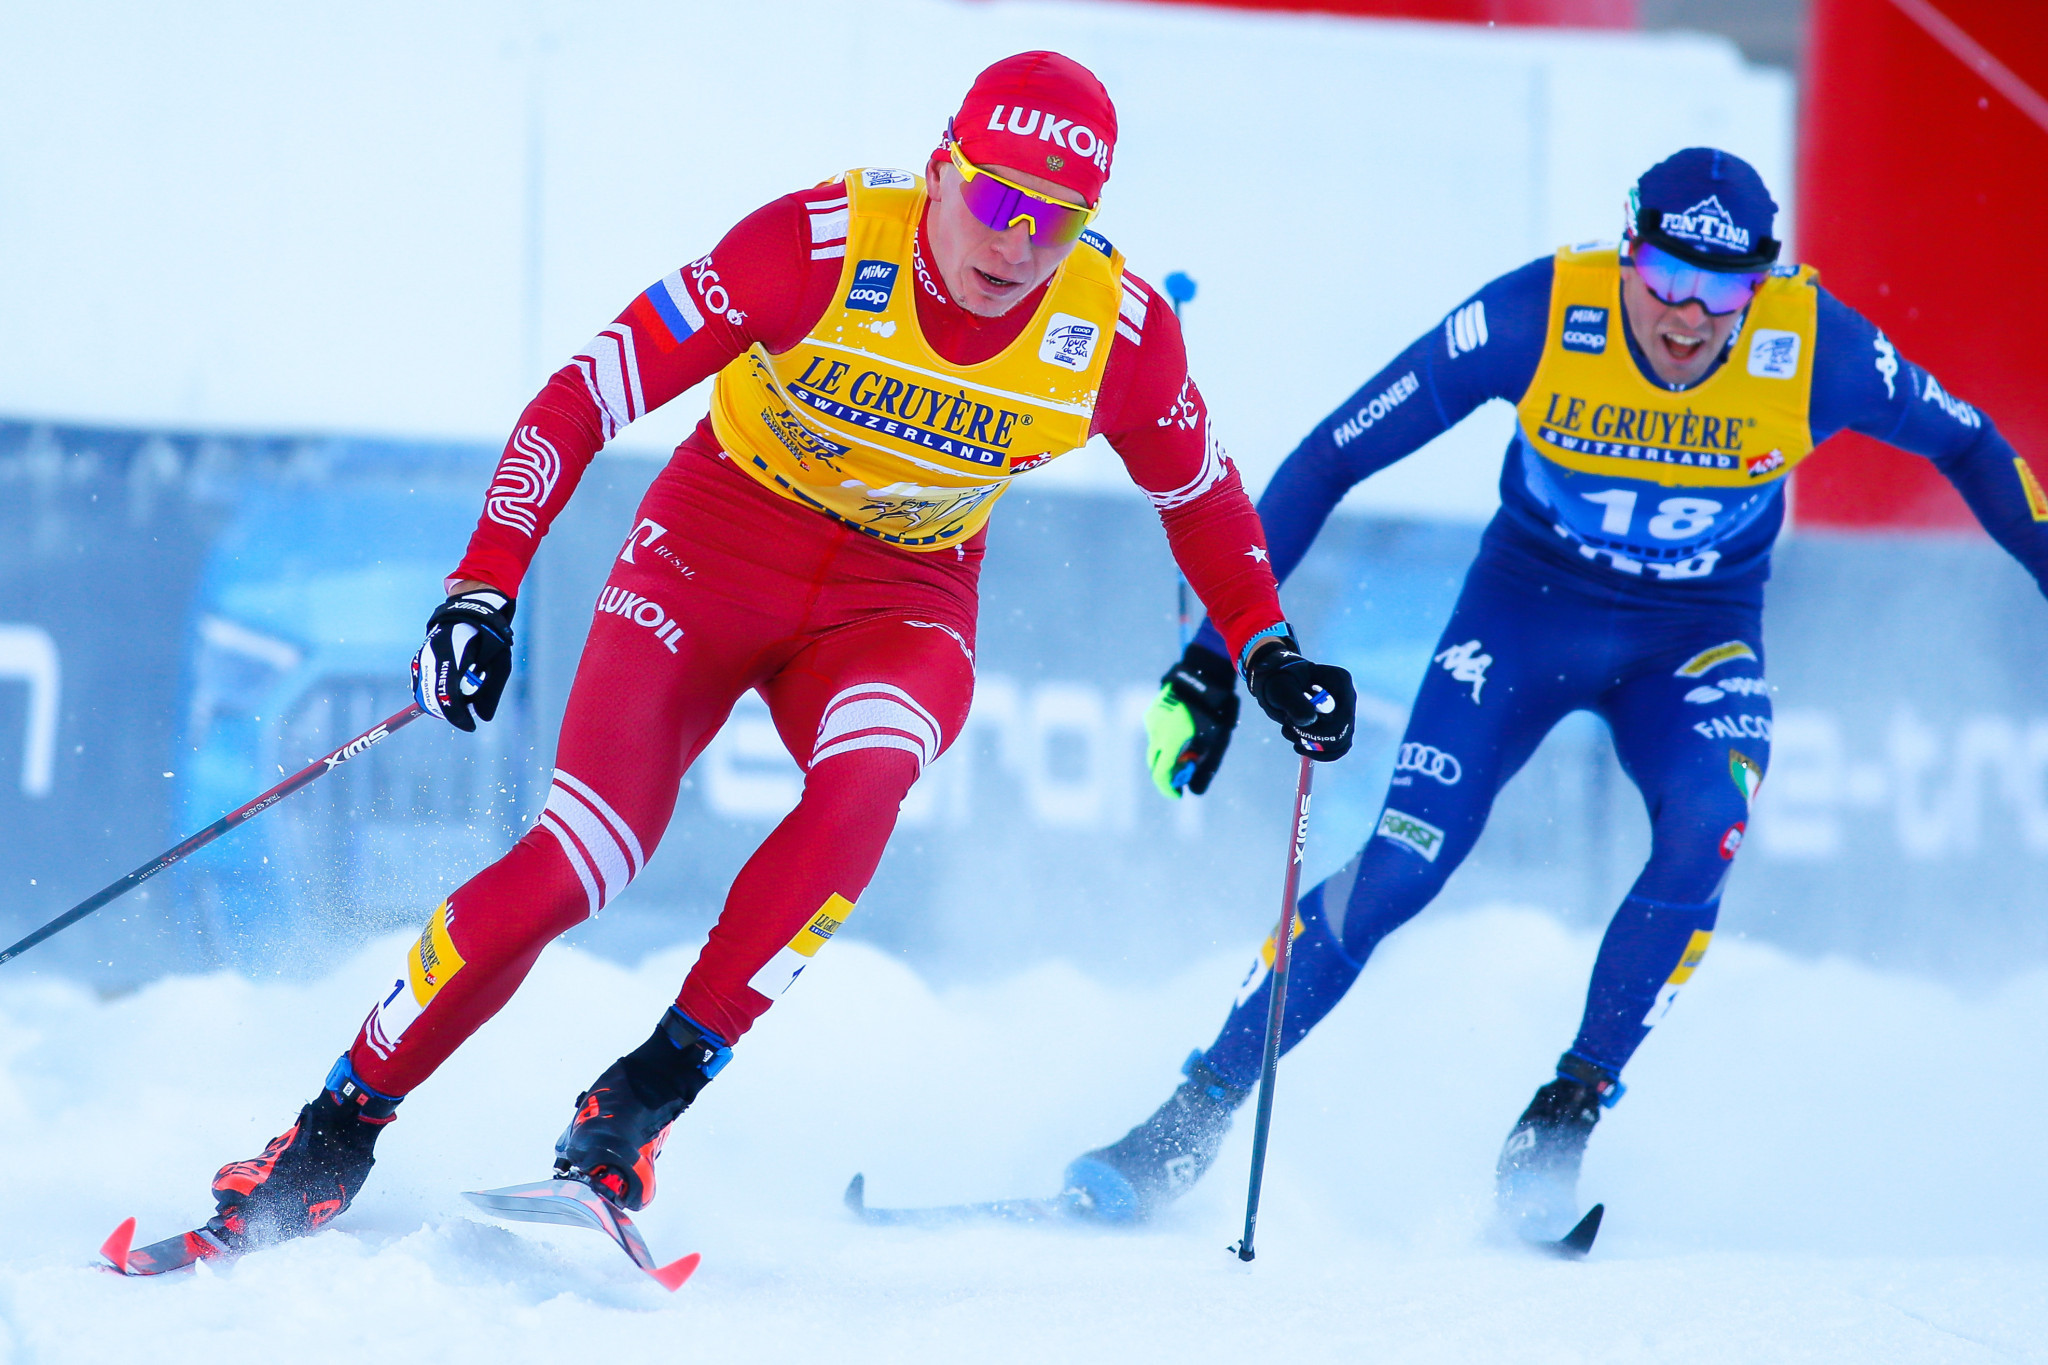 Bolshunov disqualified for physical altercation as Norway maintain Cross-Country World Cup domination in Lahti